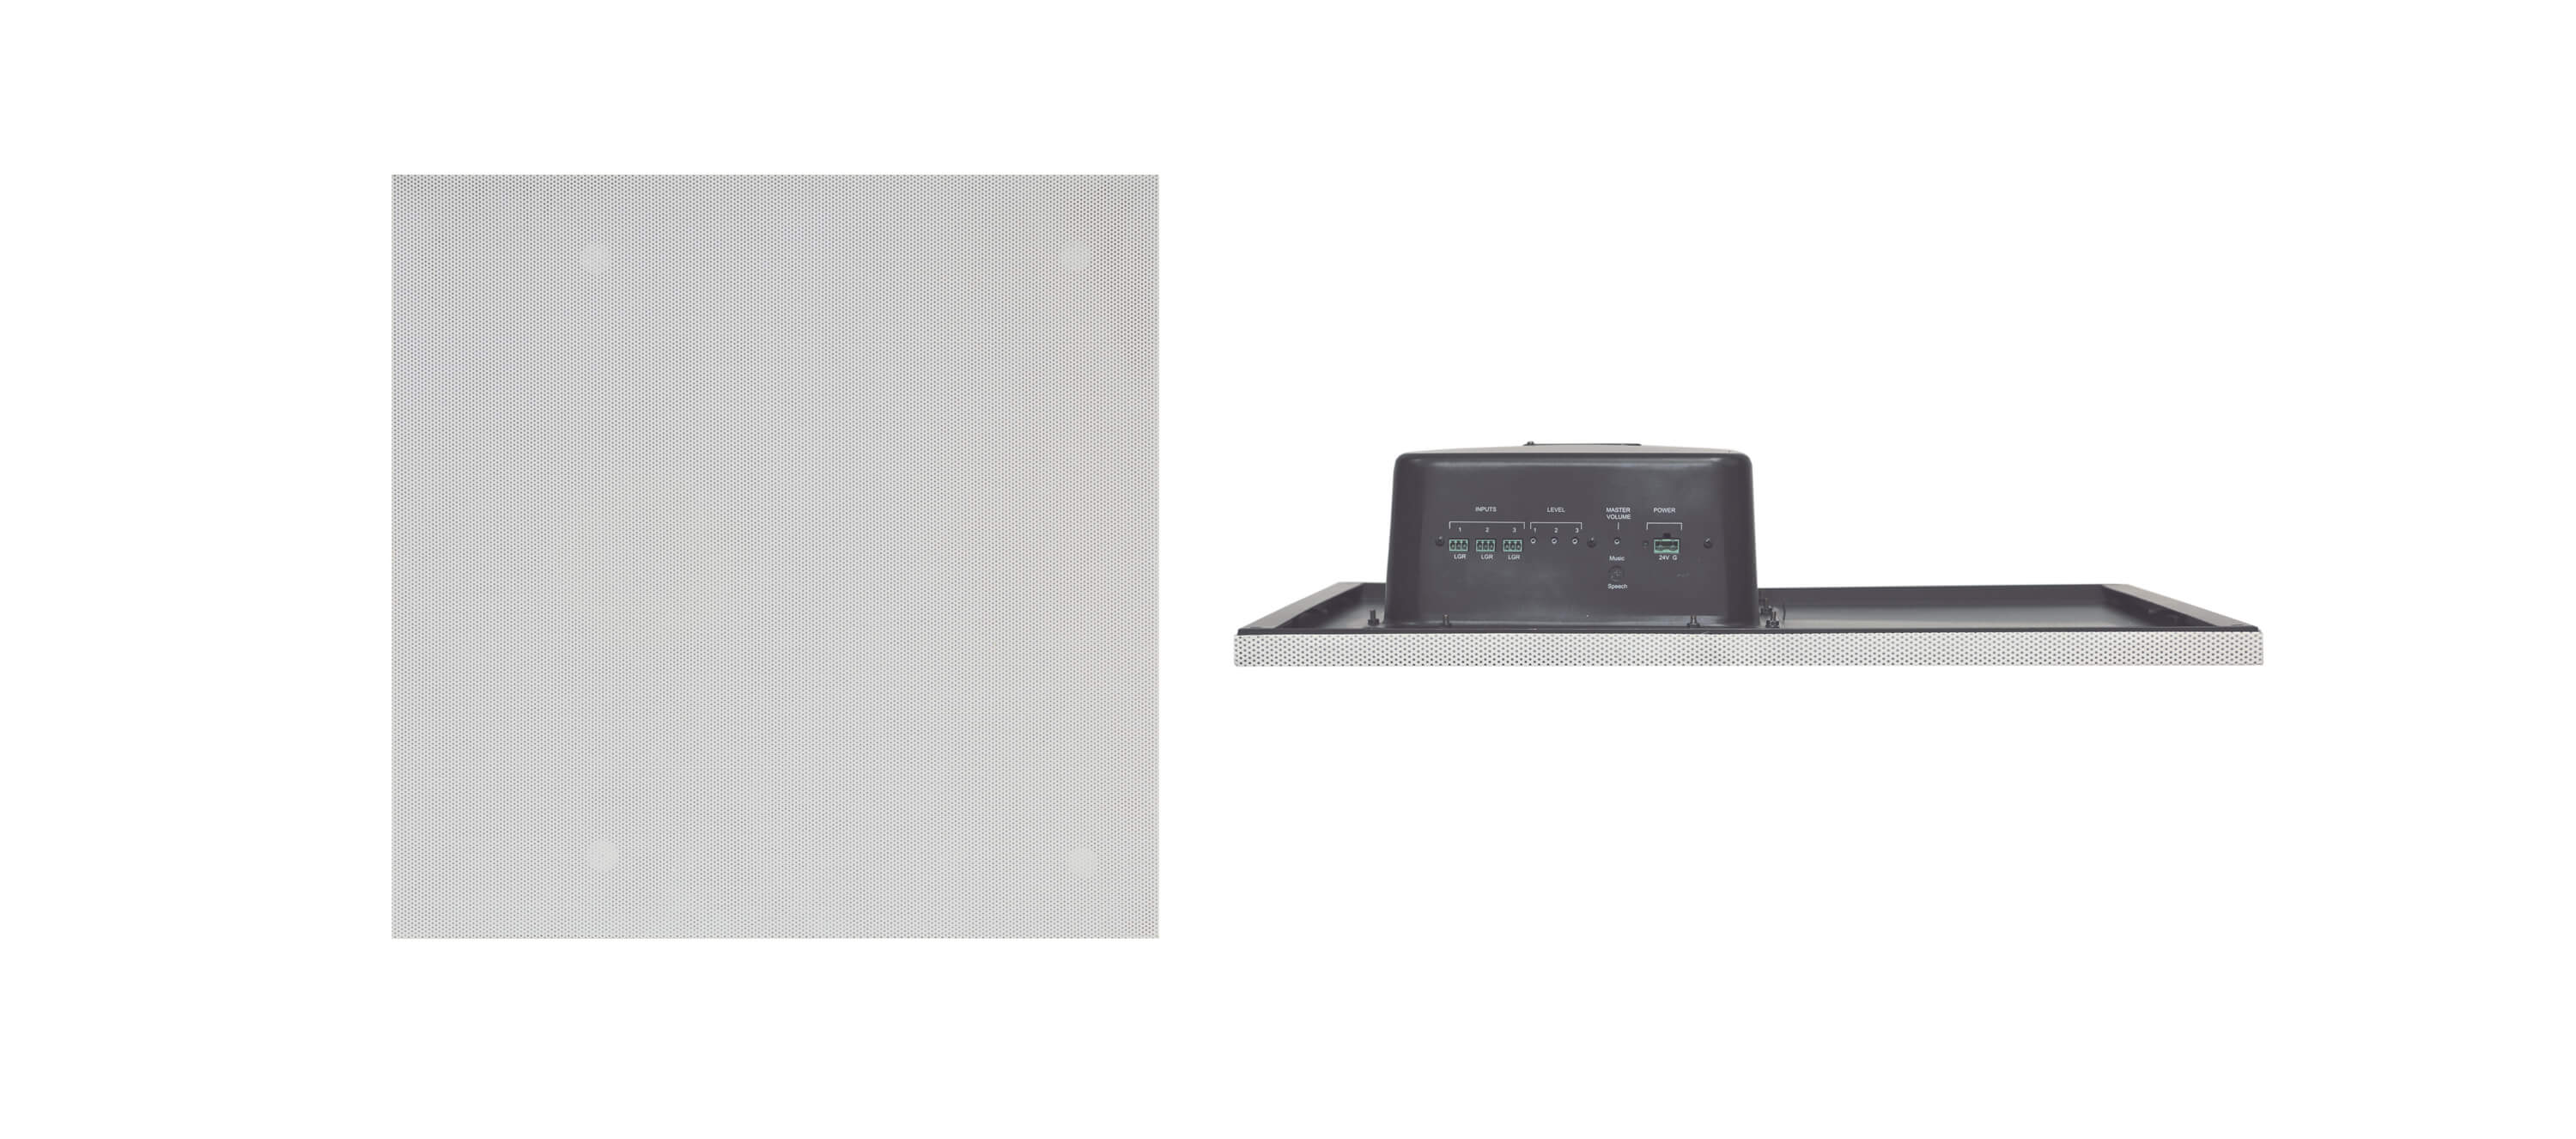 product images